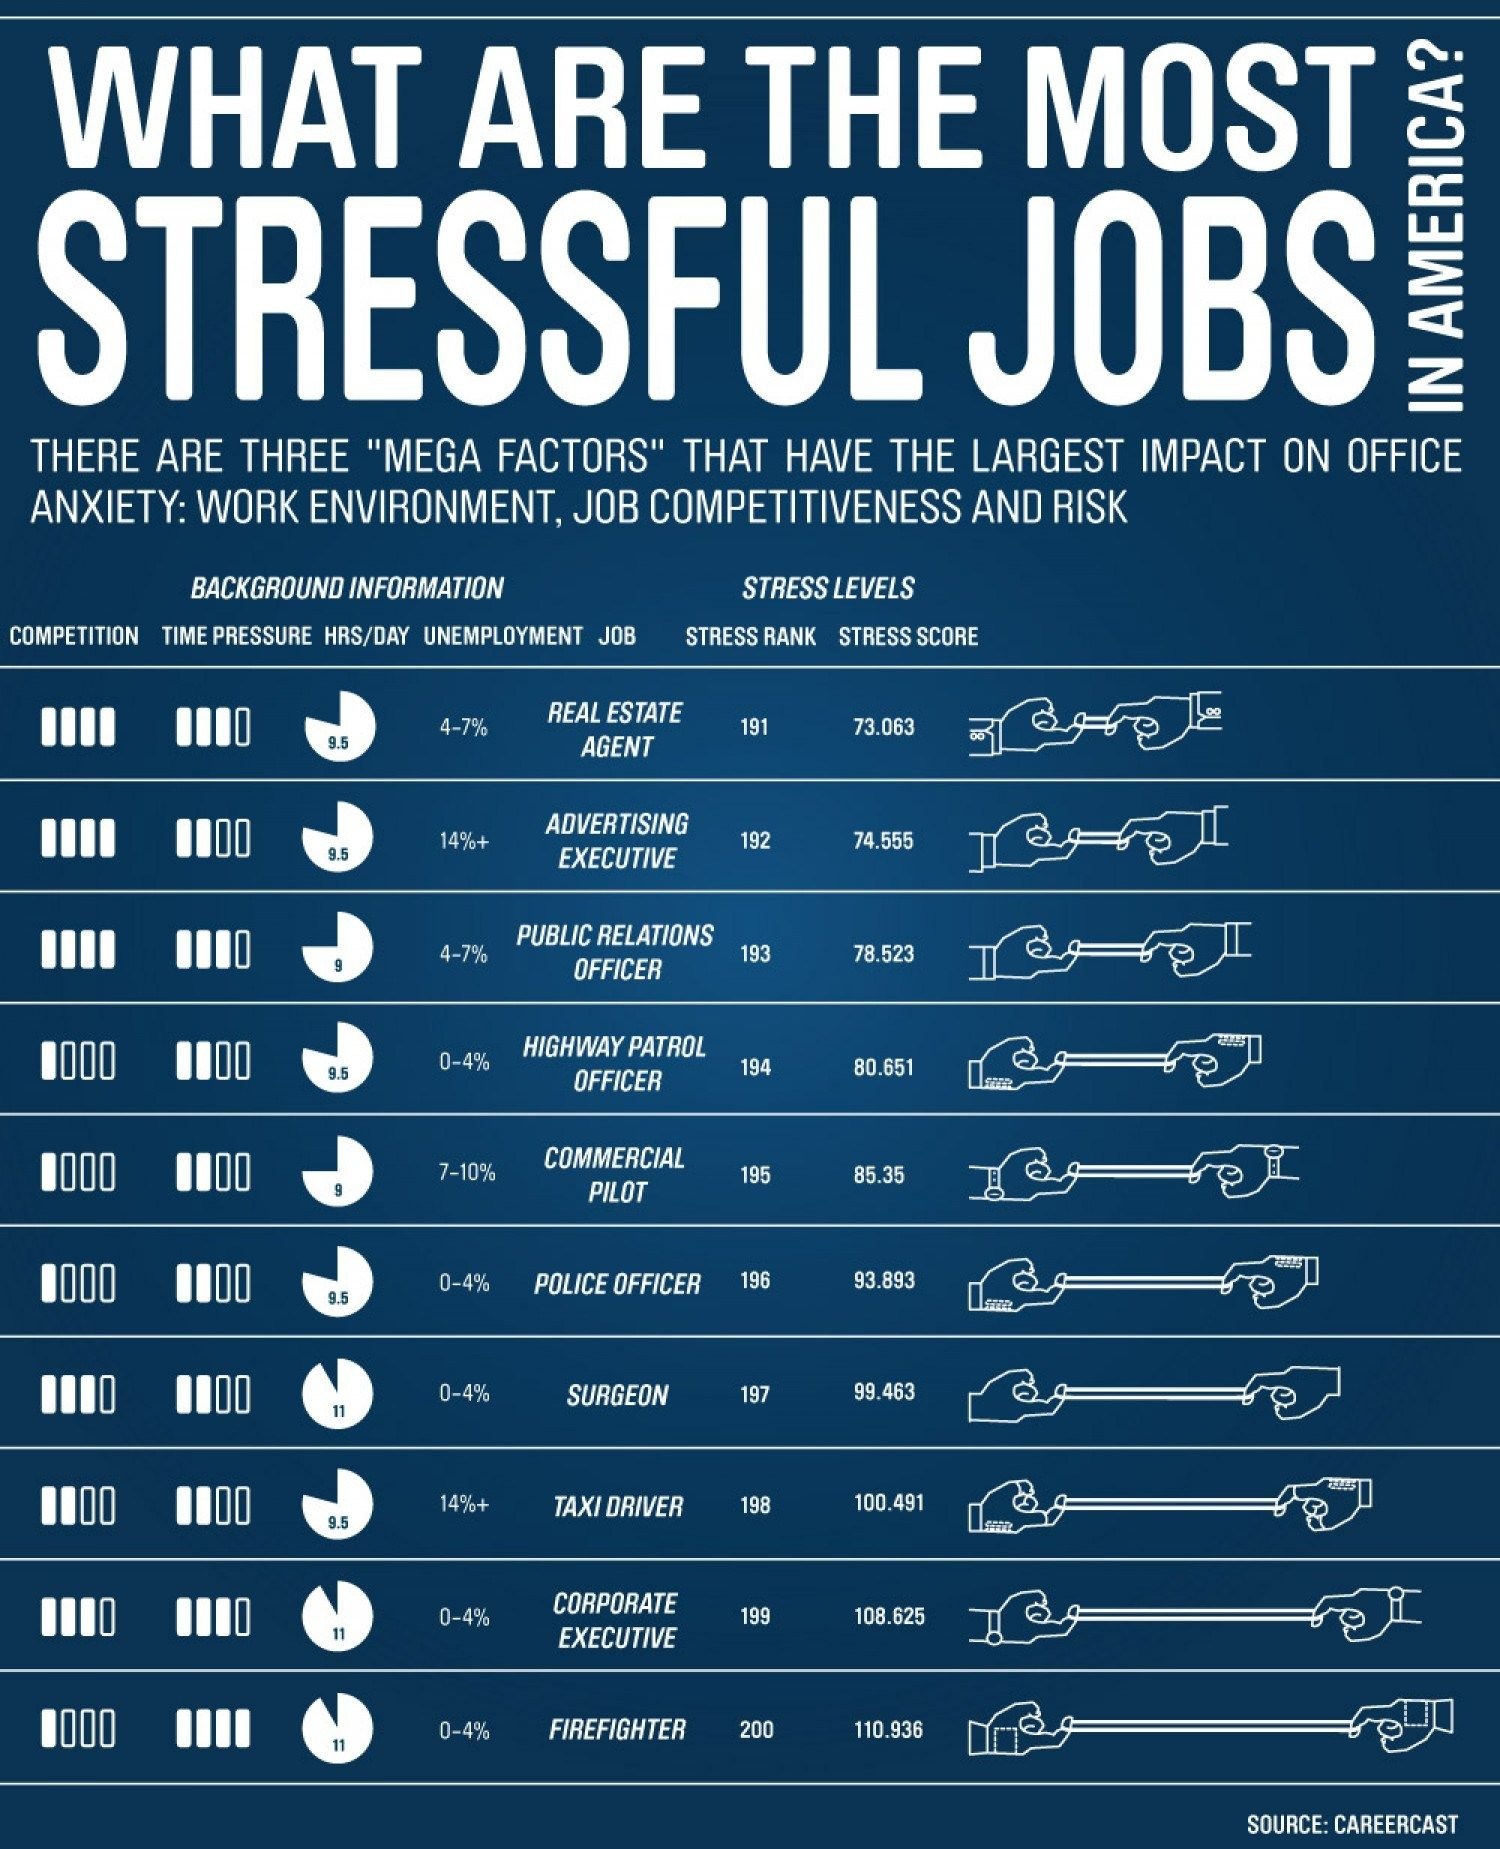 What are the Most Stressful Jobs in America?